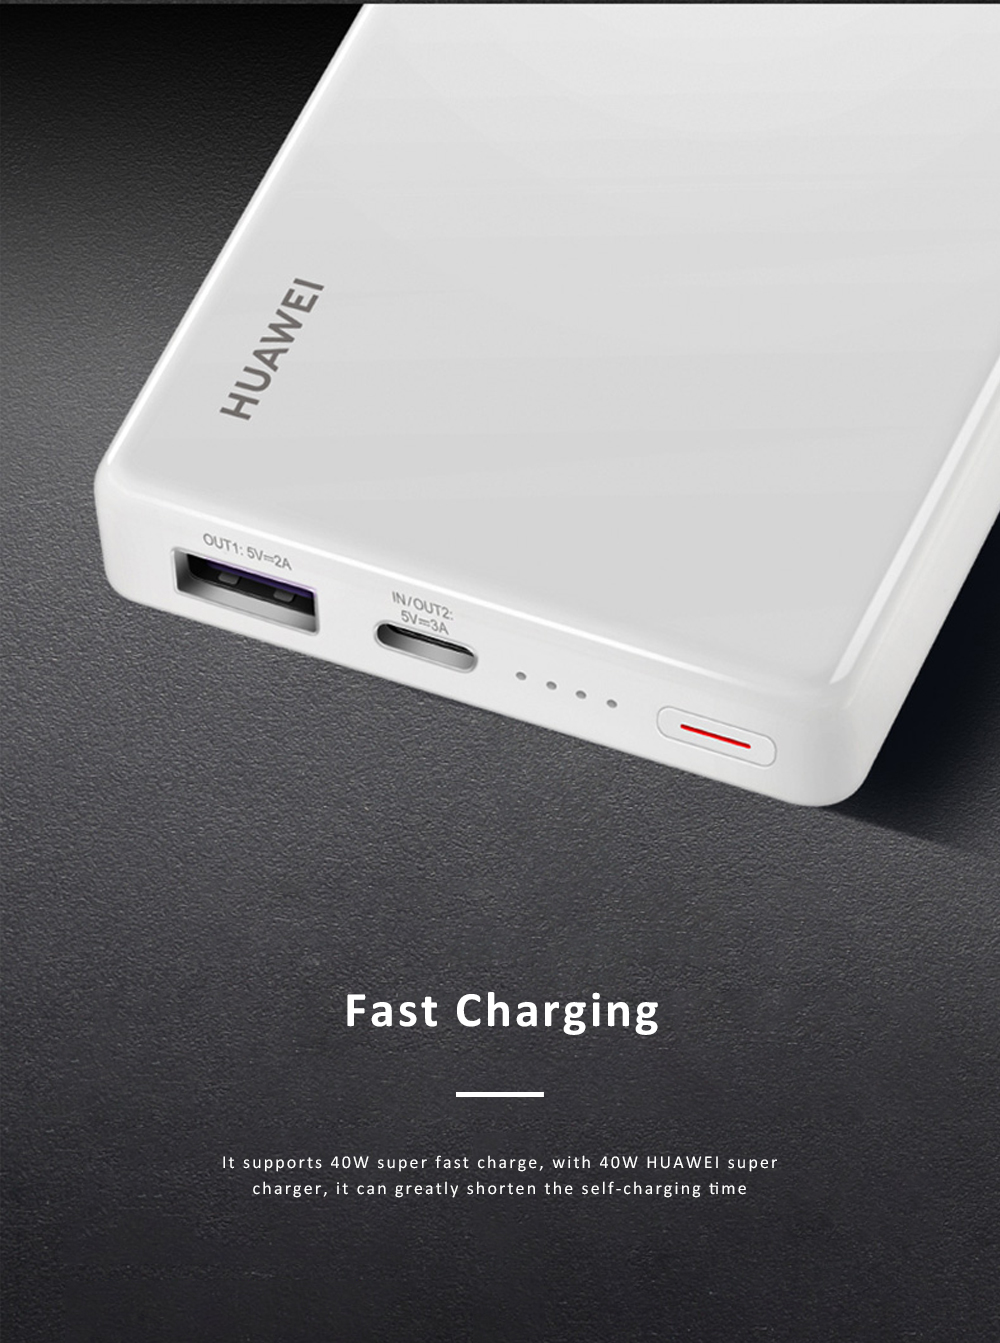 Huawei Mobile Phone Power Bank Wireless Portable Charger 12000 mAh 40W External Battery Pack Fast Charge Treasure 2